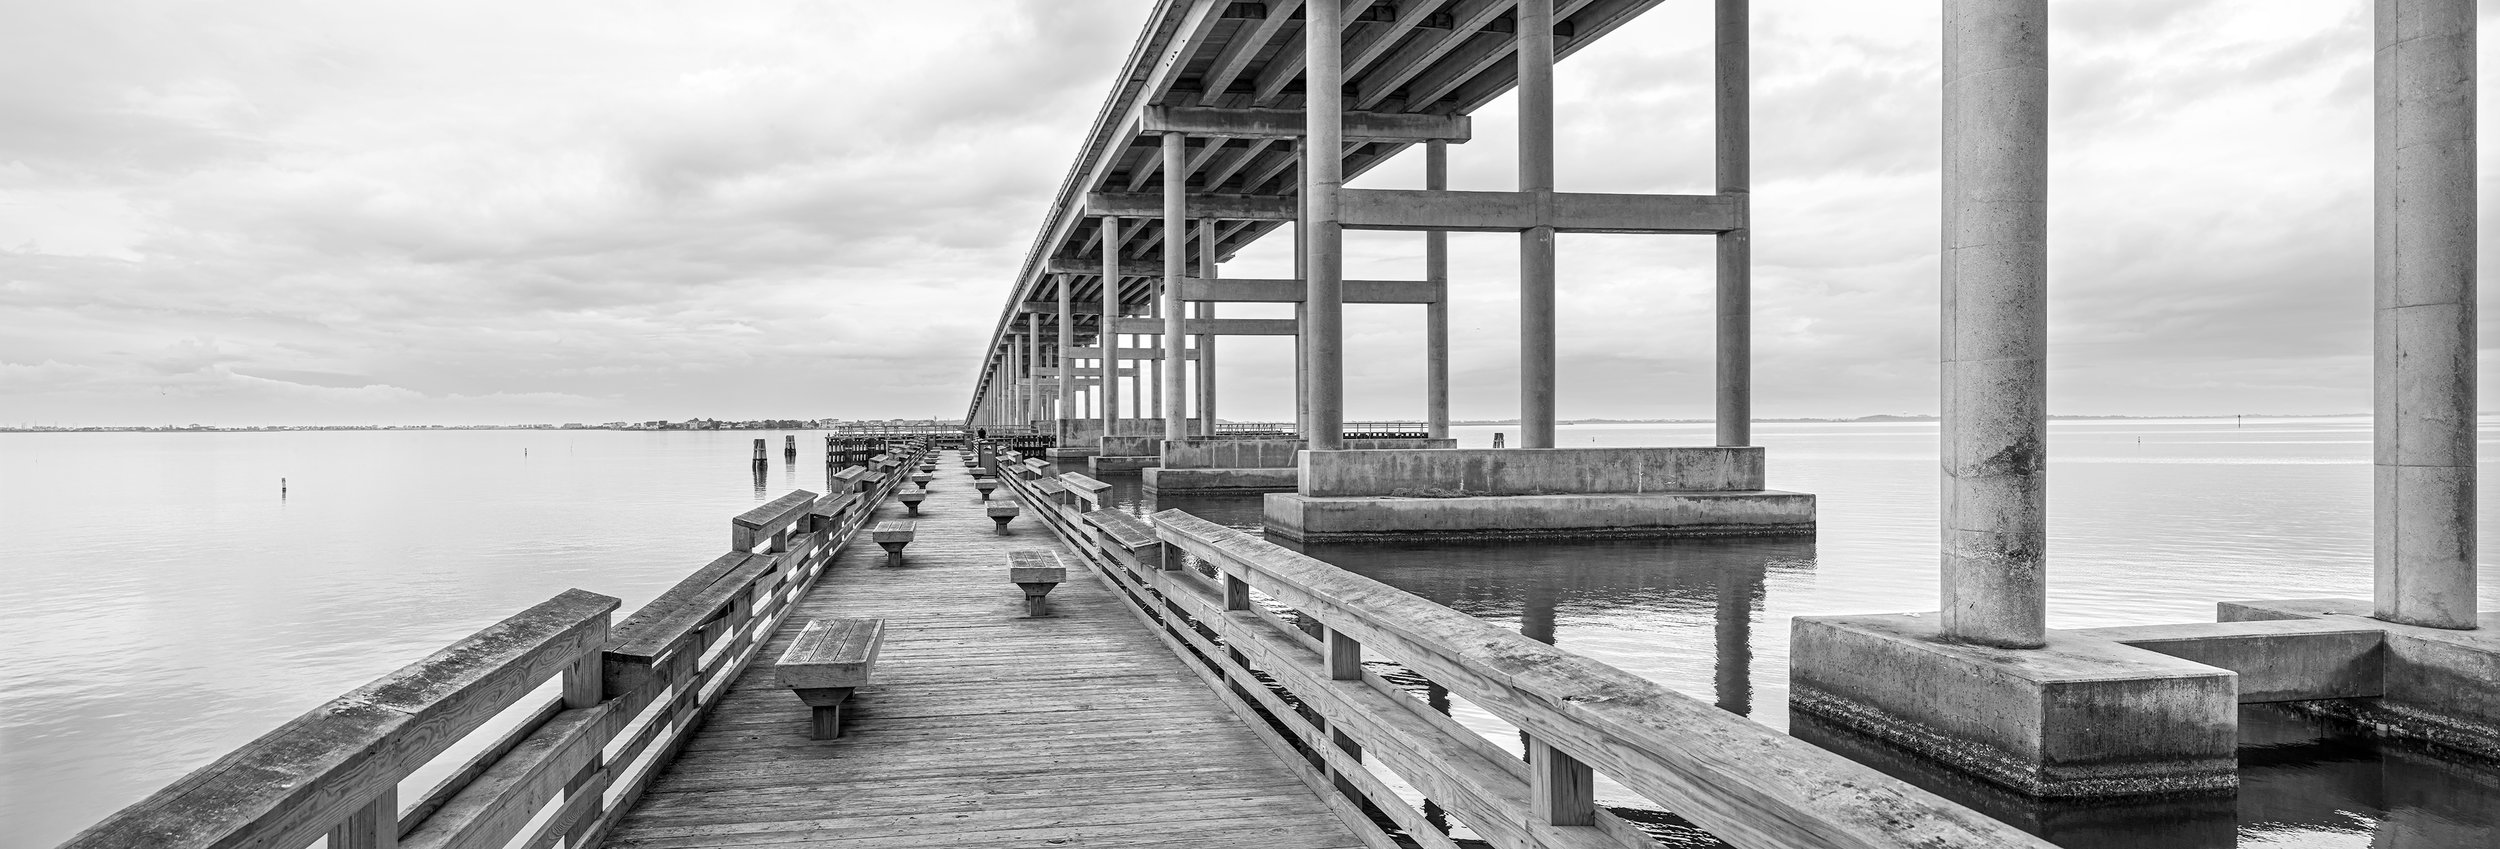 "Washington Baum Bridge. Manteo, NC. Archival Inkjet Print on 100% Cotton Photo Rag, 10"" x 29""  The Washington Baum Bridge is a vital piece of infrastructure that crosses the Roanoke Sound, linking North Carolina's mainland with the Outer Banks and providing easy automobile access to the barrier islands. Underneath, a wooden pier provides an opportunity to fish in the sound."